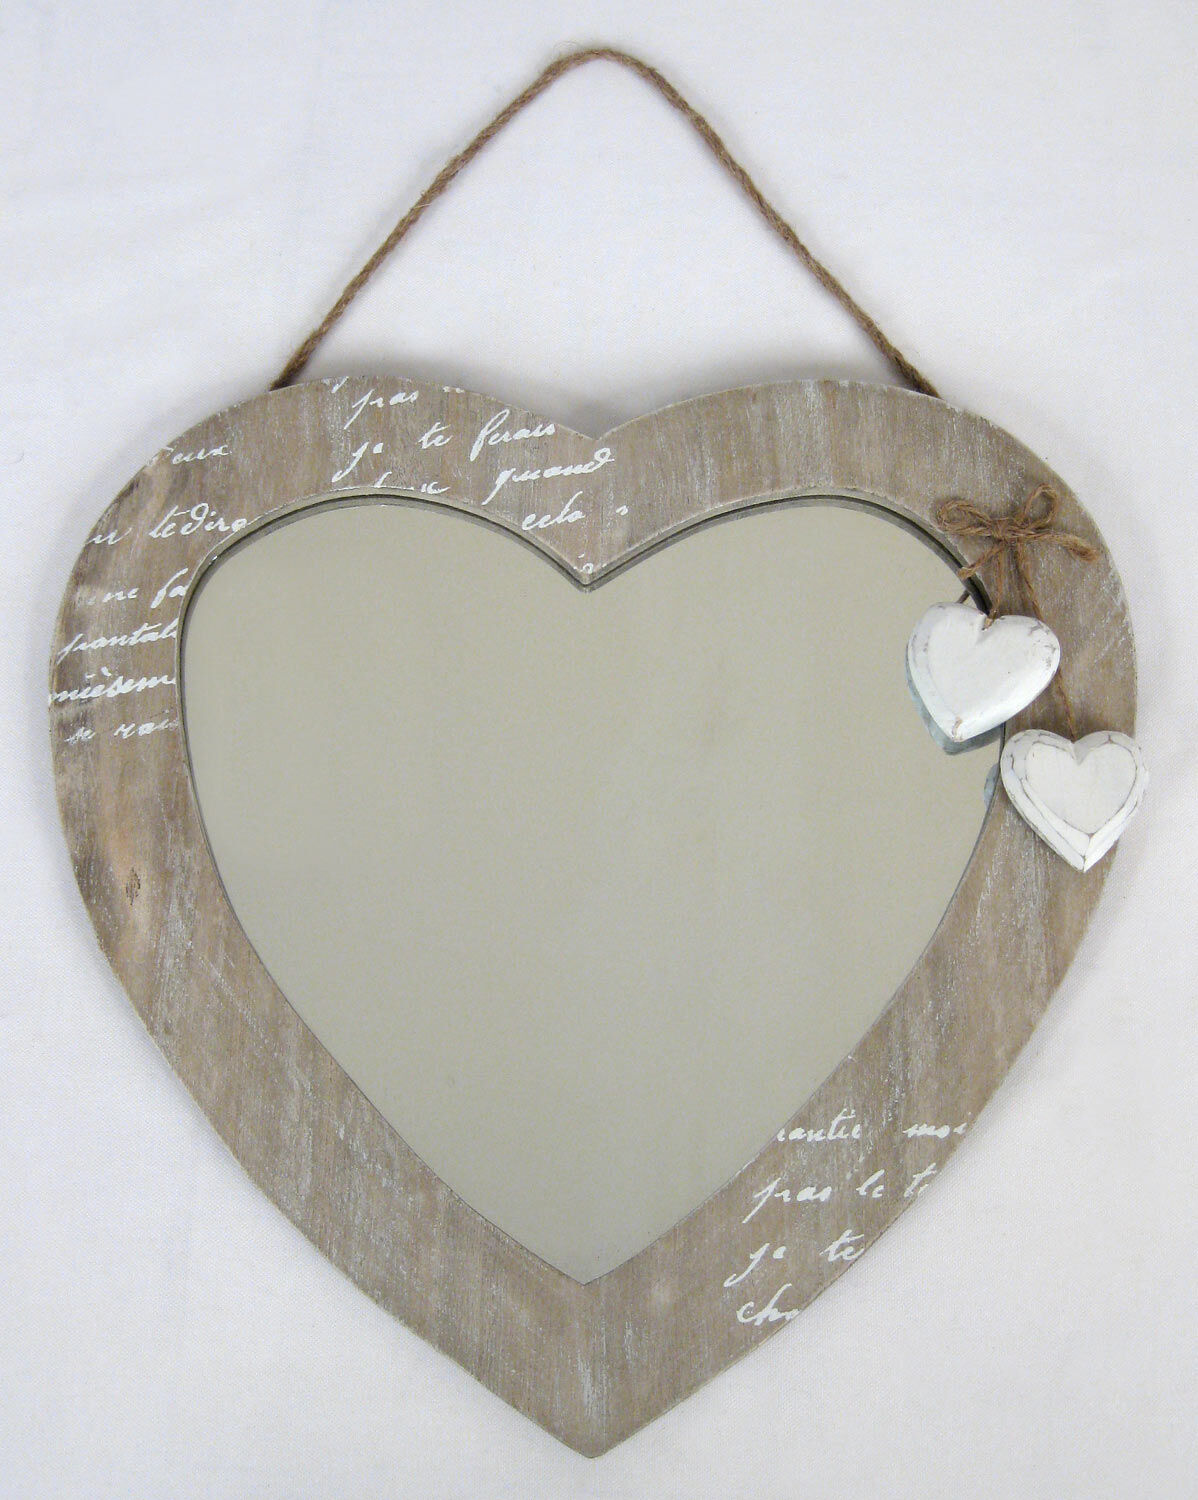 Wall Hanging Mirror Love Heart Design Shabby Chic Wood